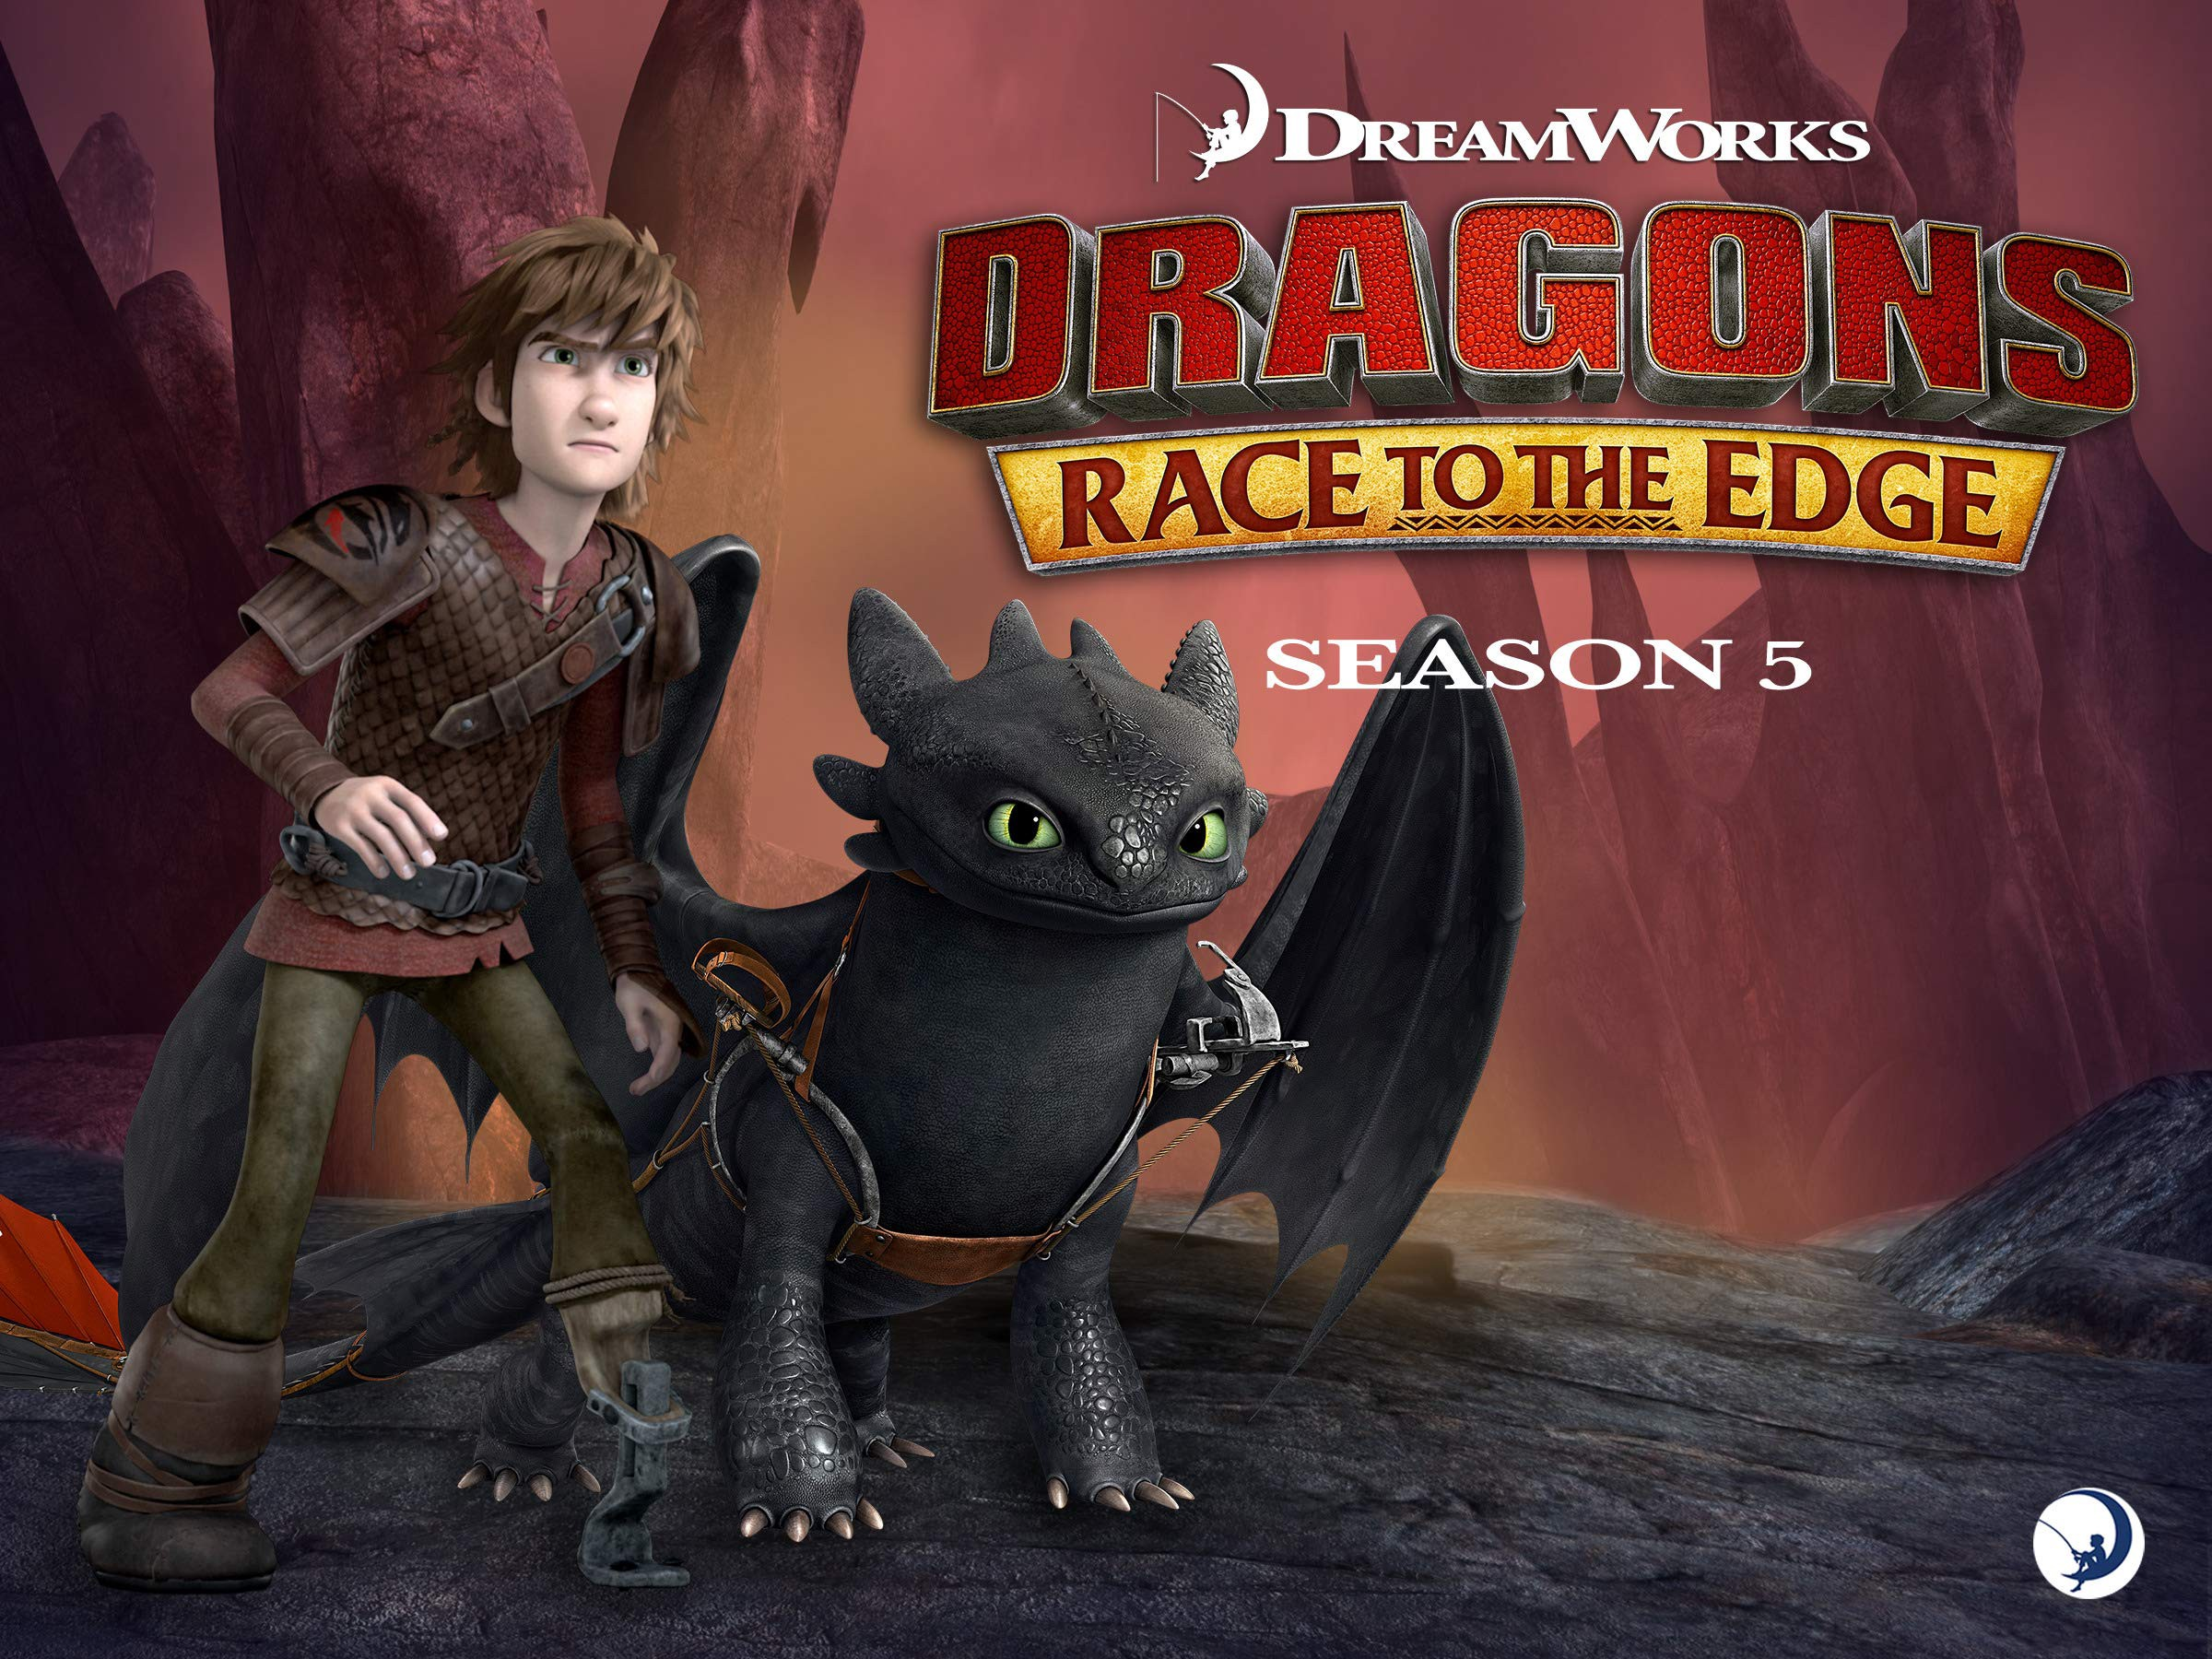 How To Train Your Dragon In 2020 A Return To Race To The Edge By Priya Sridhar Permanent Nerd Network Medium